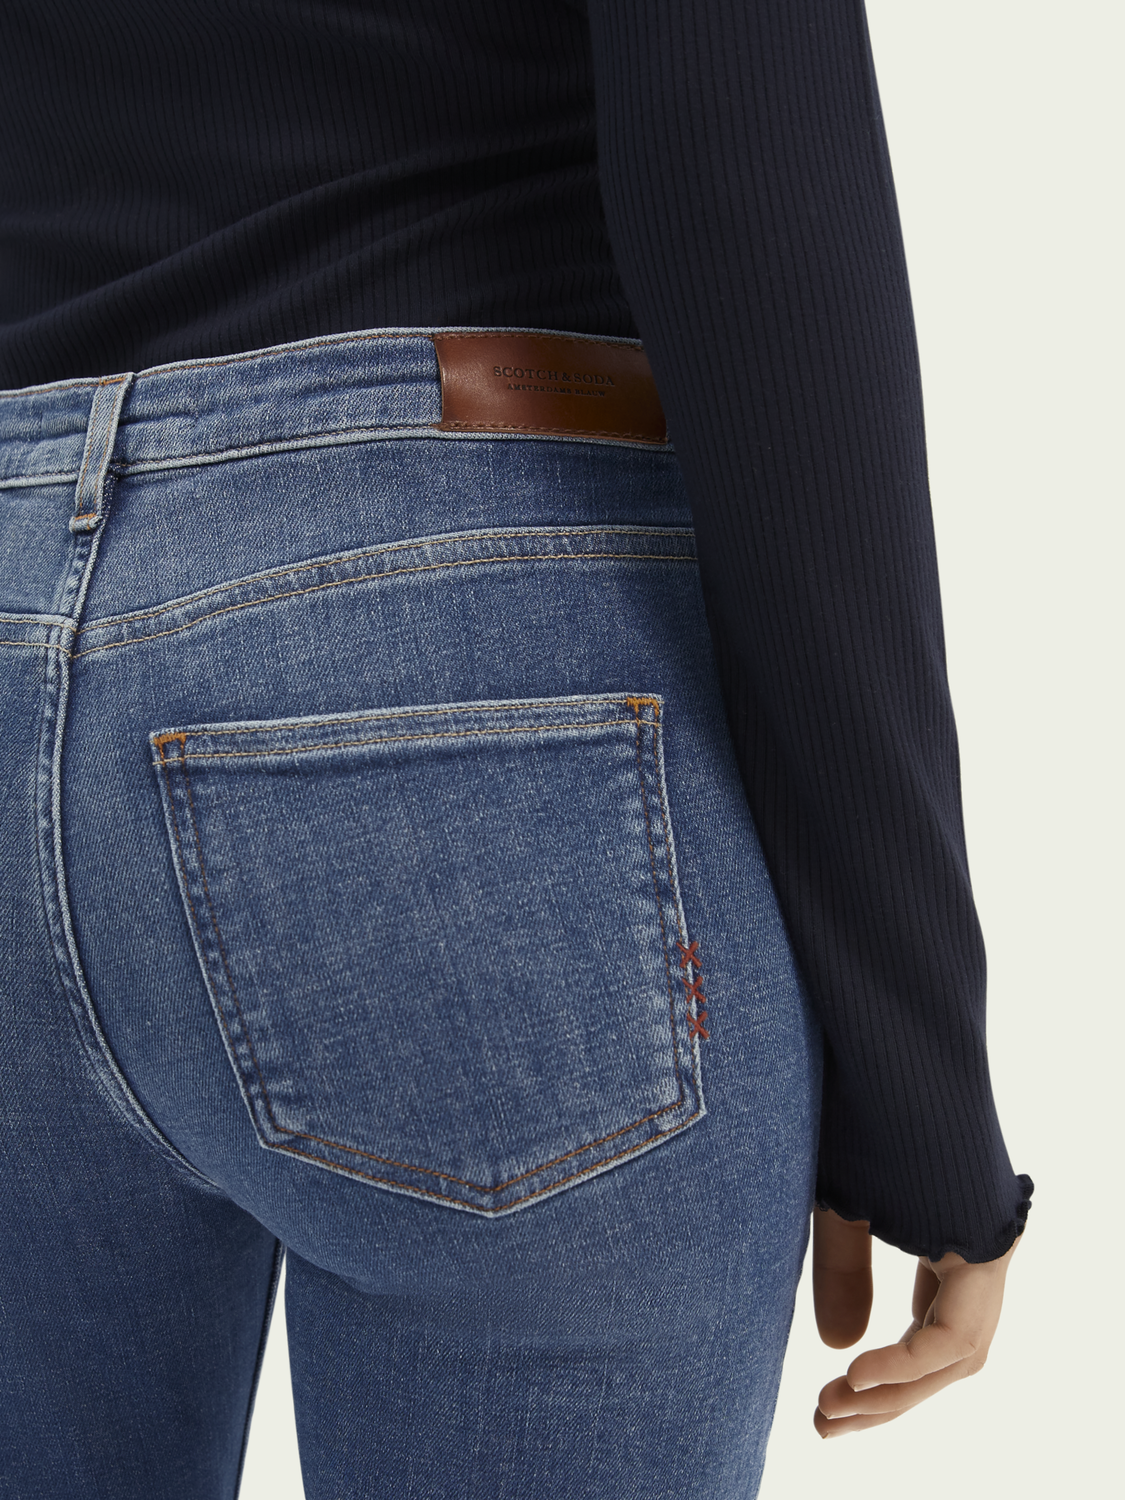 Dames Haut versleten superstretch jeans - Time After Time